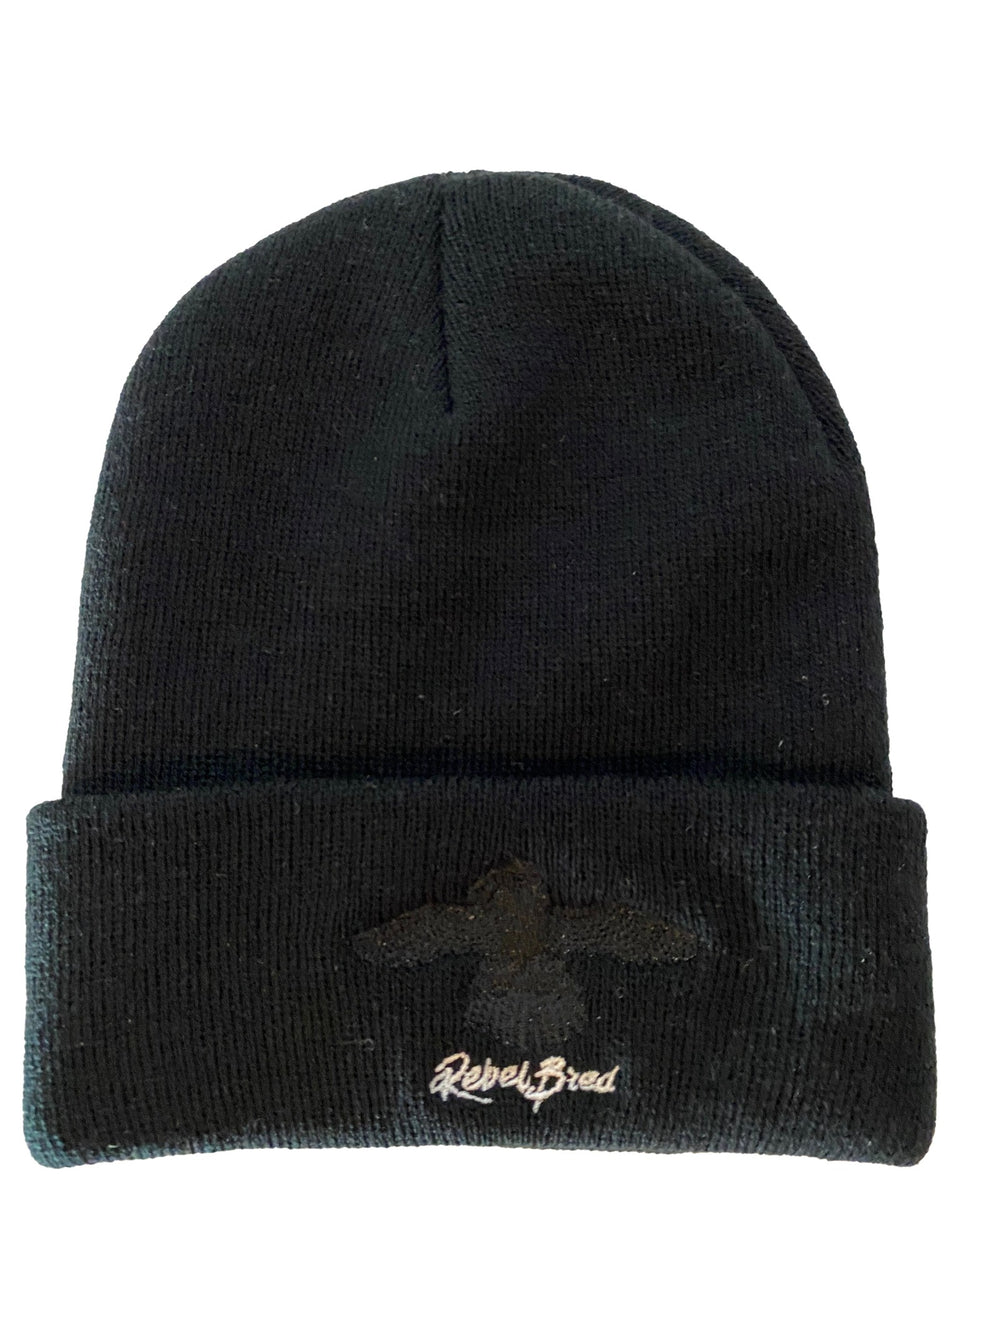 Black On Black - Black Winter Hat with Black Logo